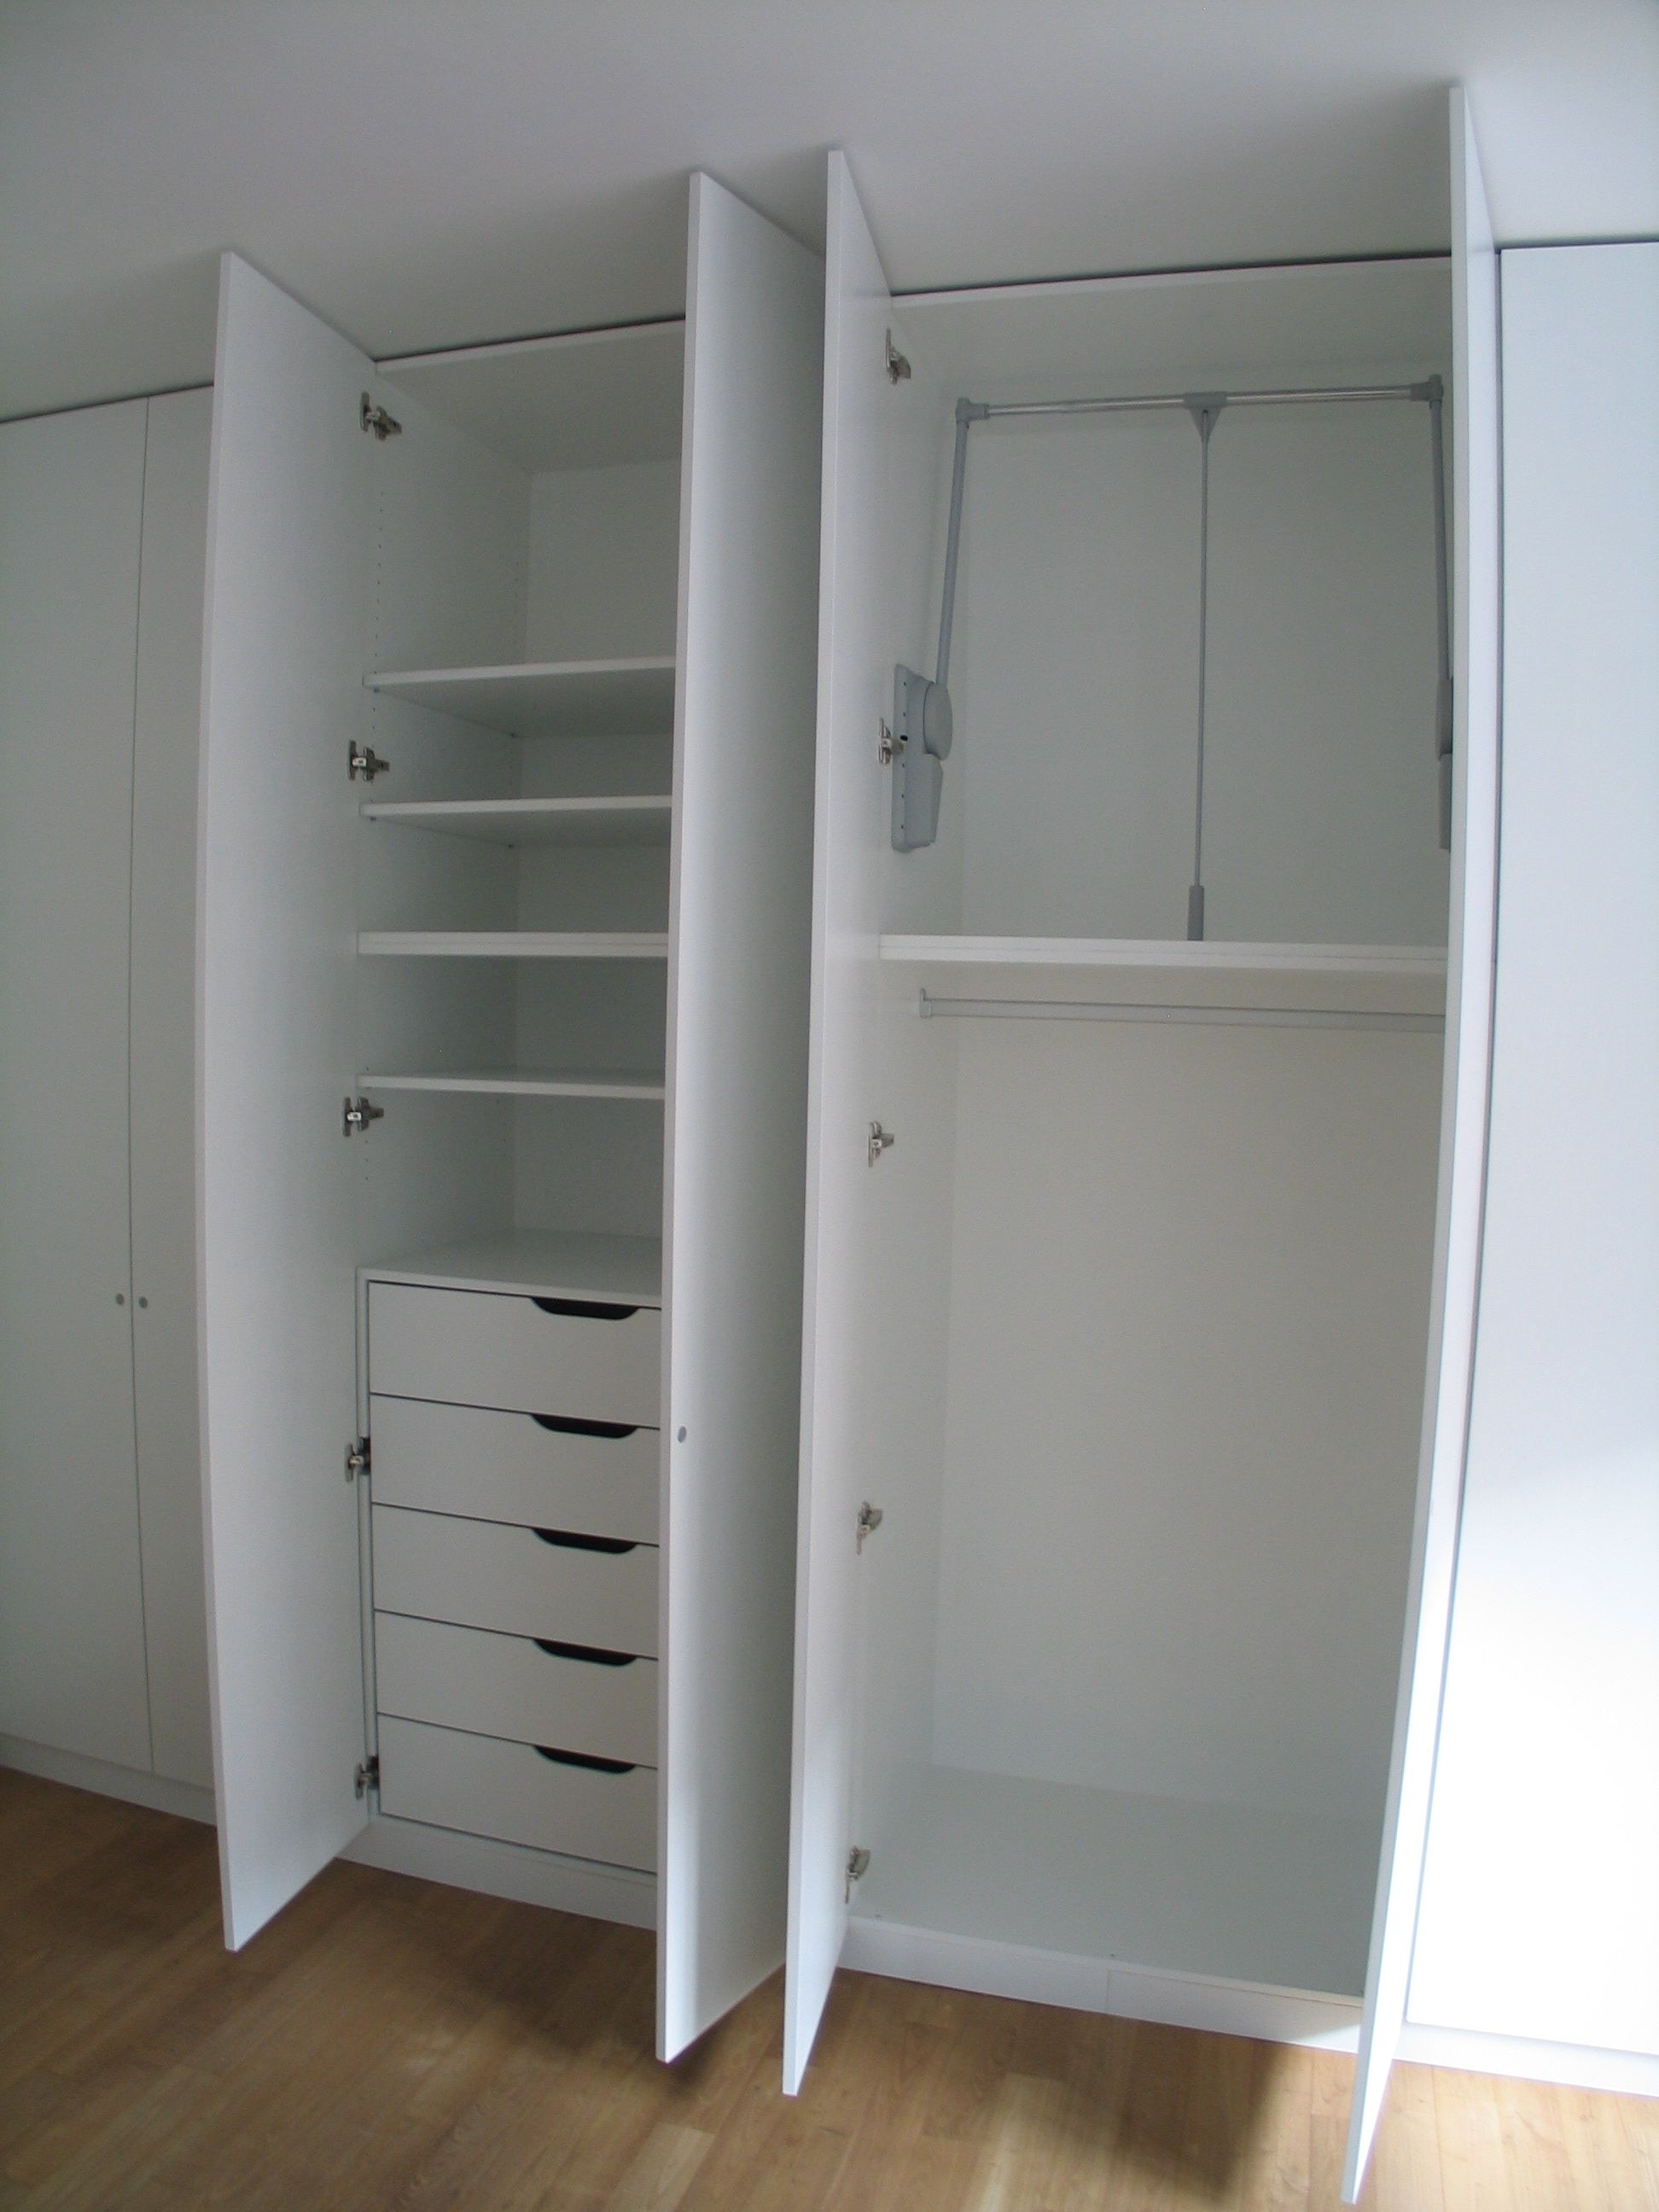 White Wooden Wardrobes With Regard To Well Liked Vintage White Wooden Wardrobe With Inside Shelves And Numerous (View 8 of 15)